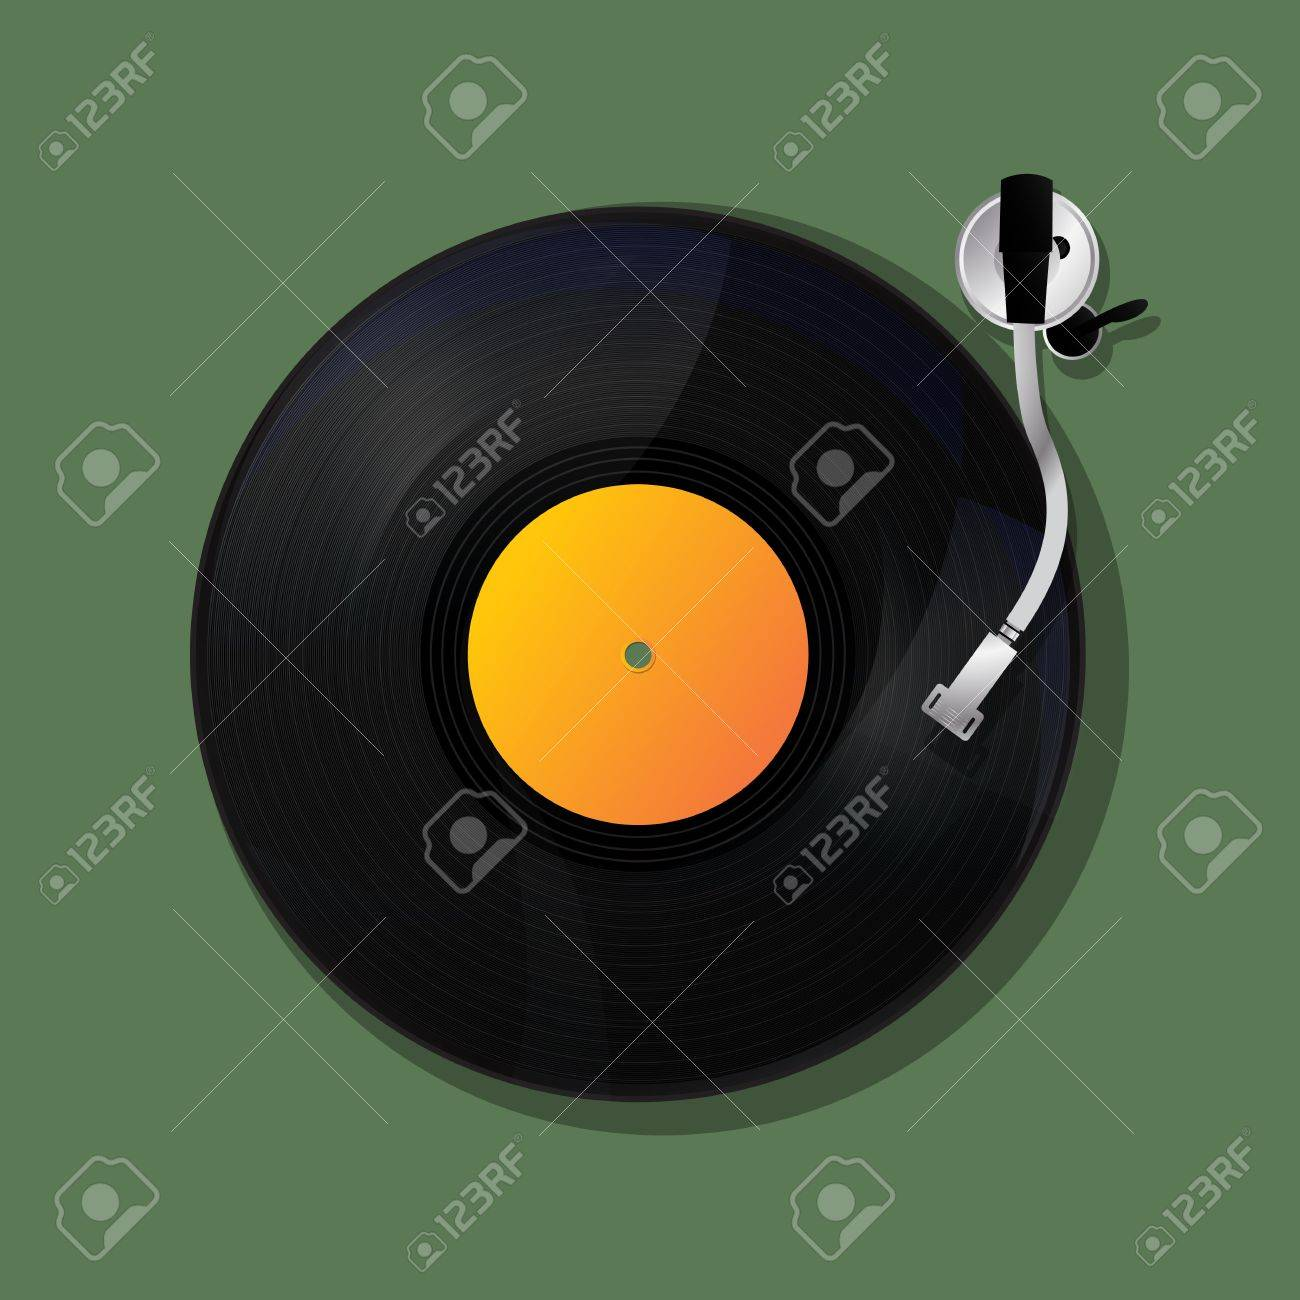 Turntable background, music icon design Stock Vector - 21775456